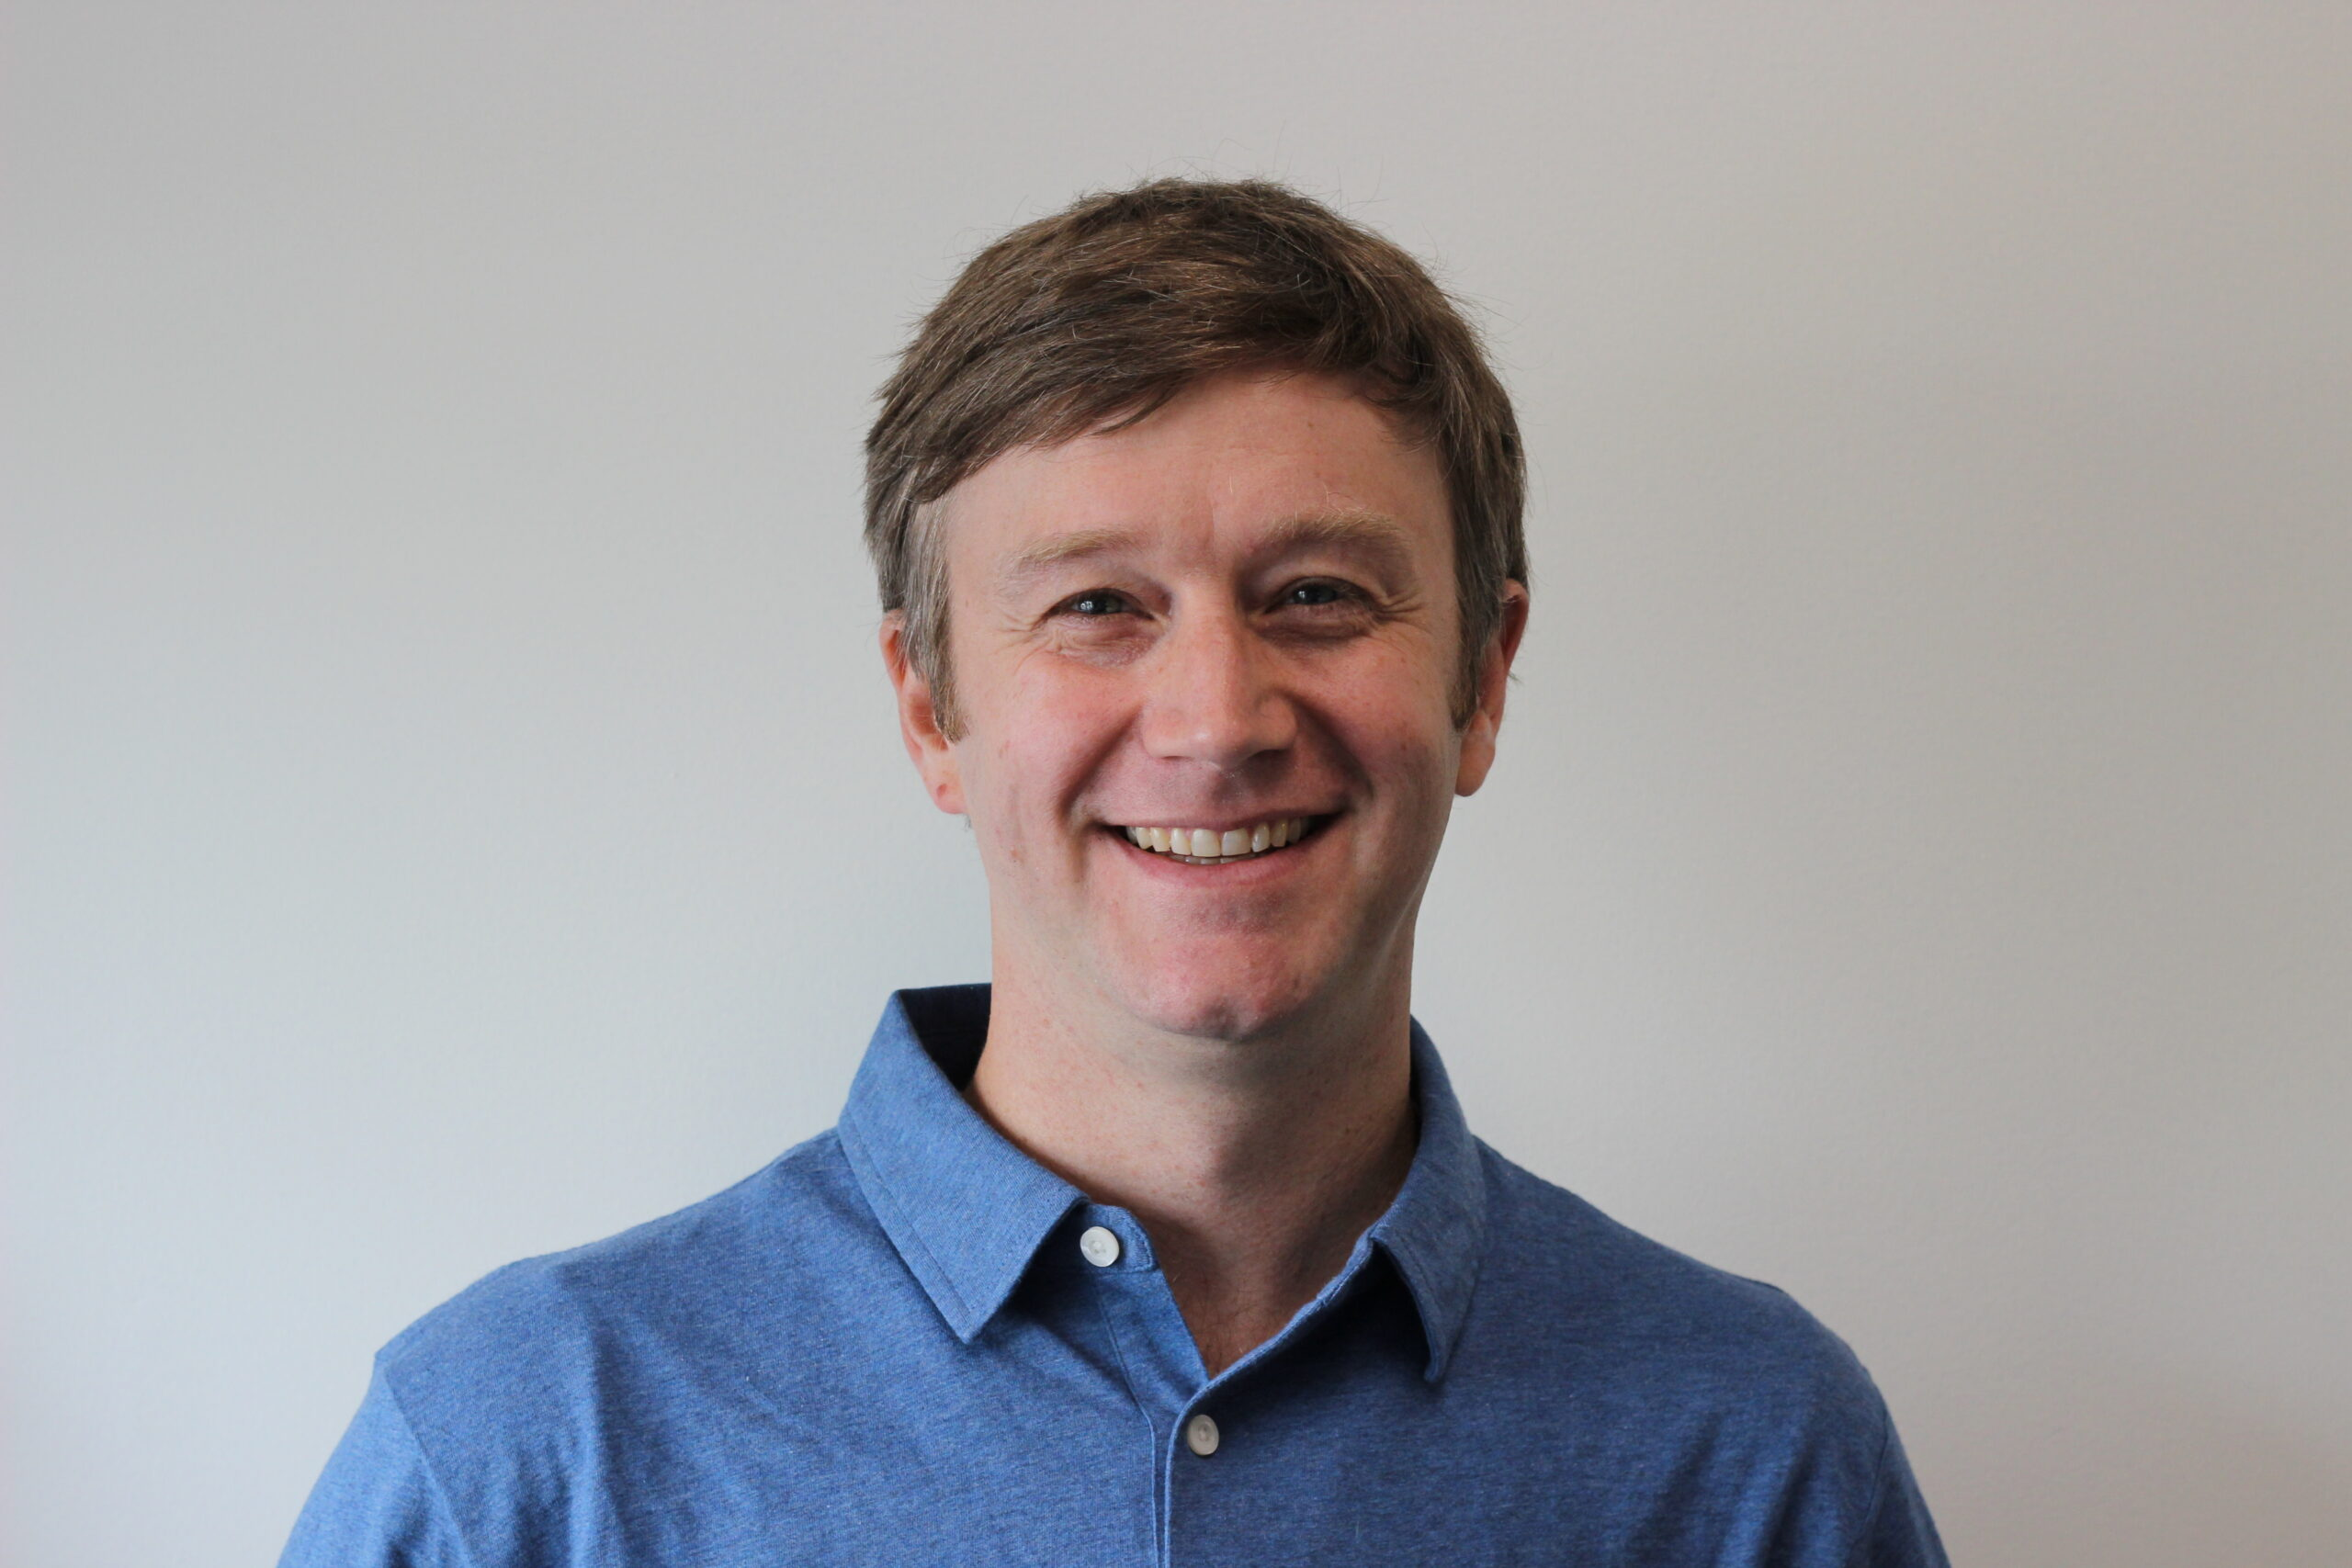 B Corp is Better for Business: An Interview with GreenSpark Solar COO George McConochie